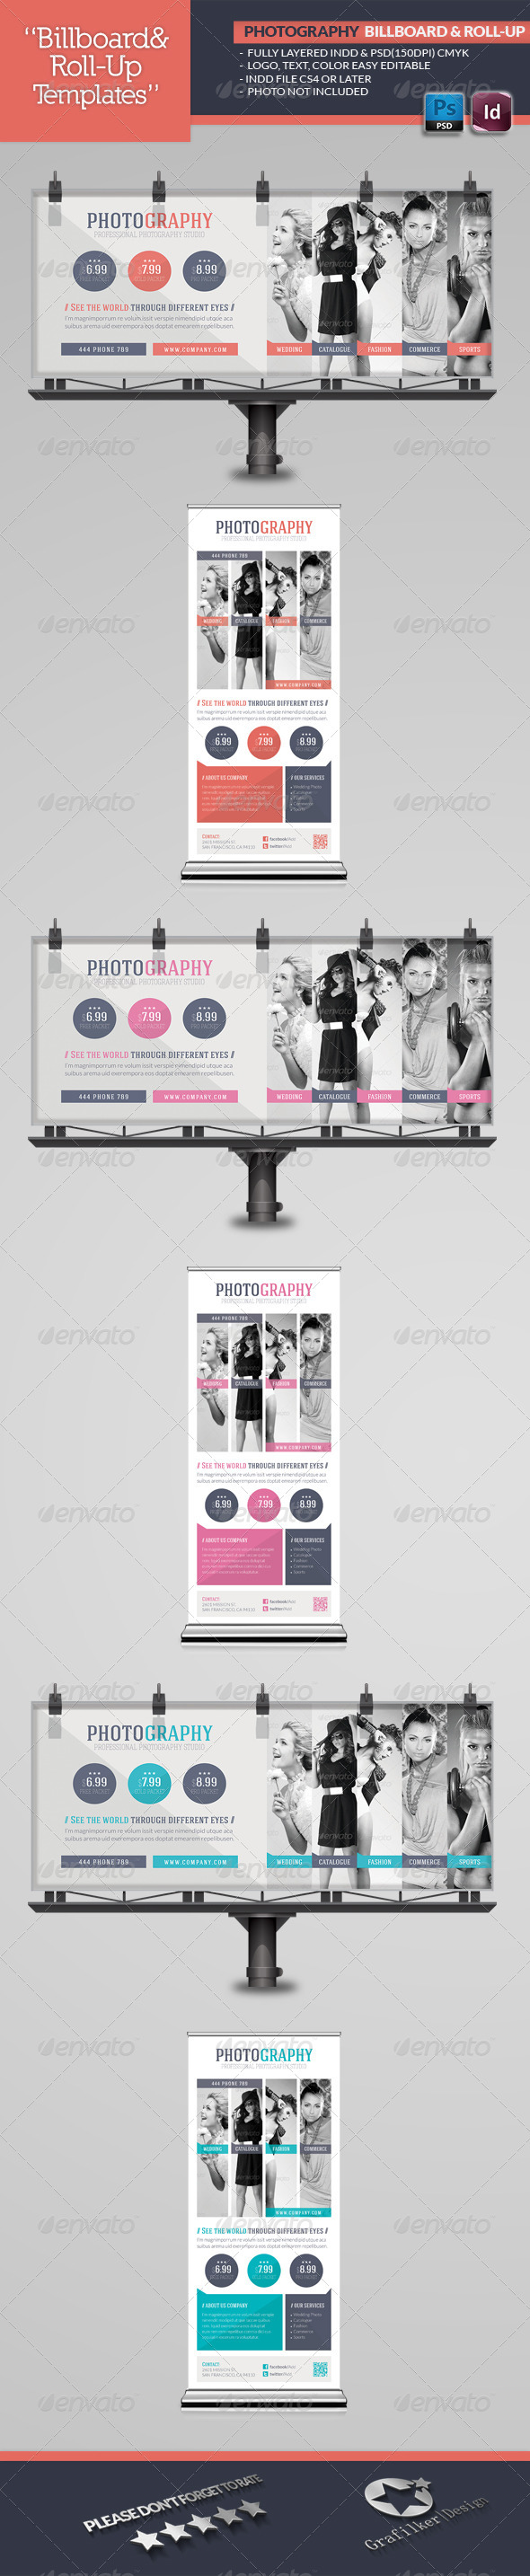 Photography Billboard & Roll-Up Template - Signage Print Templates